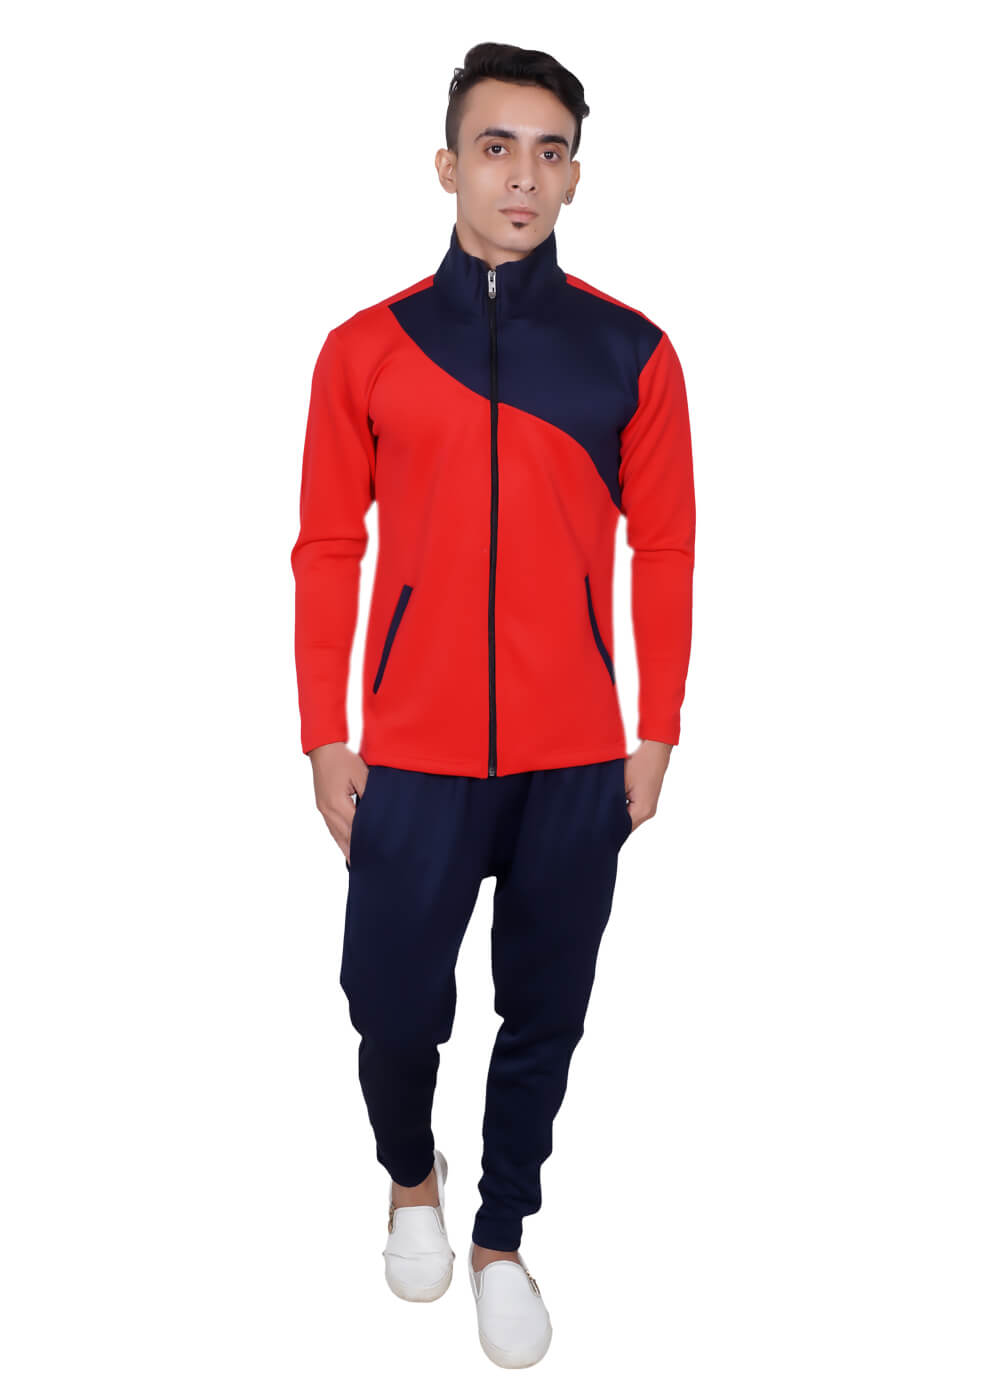 Cheap Tracksuits Manufacturers in Jalandhar in Bahrain